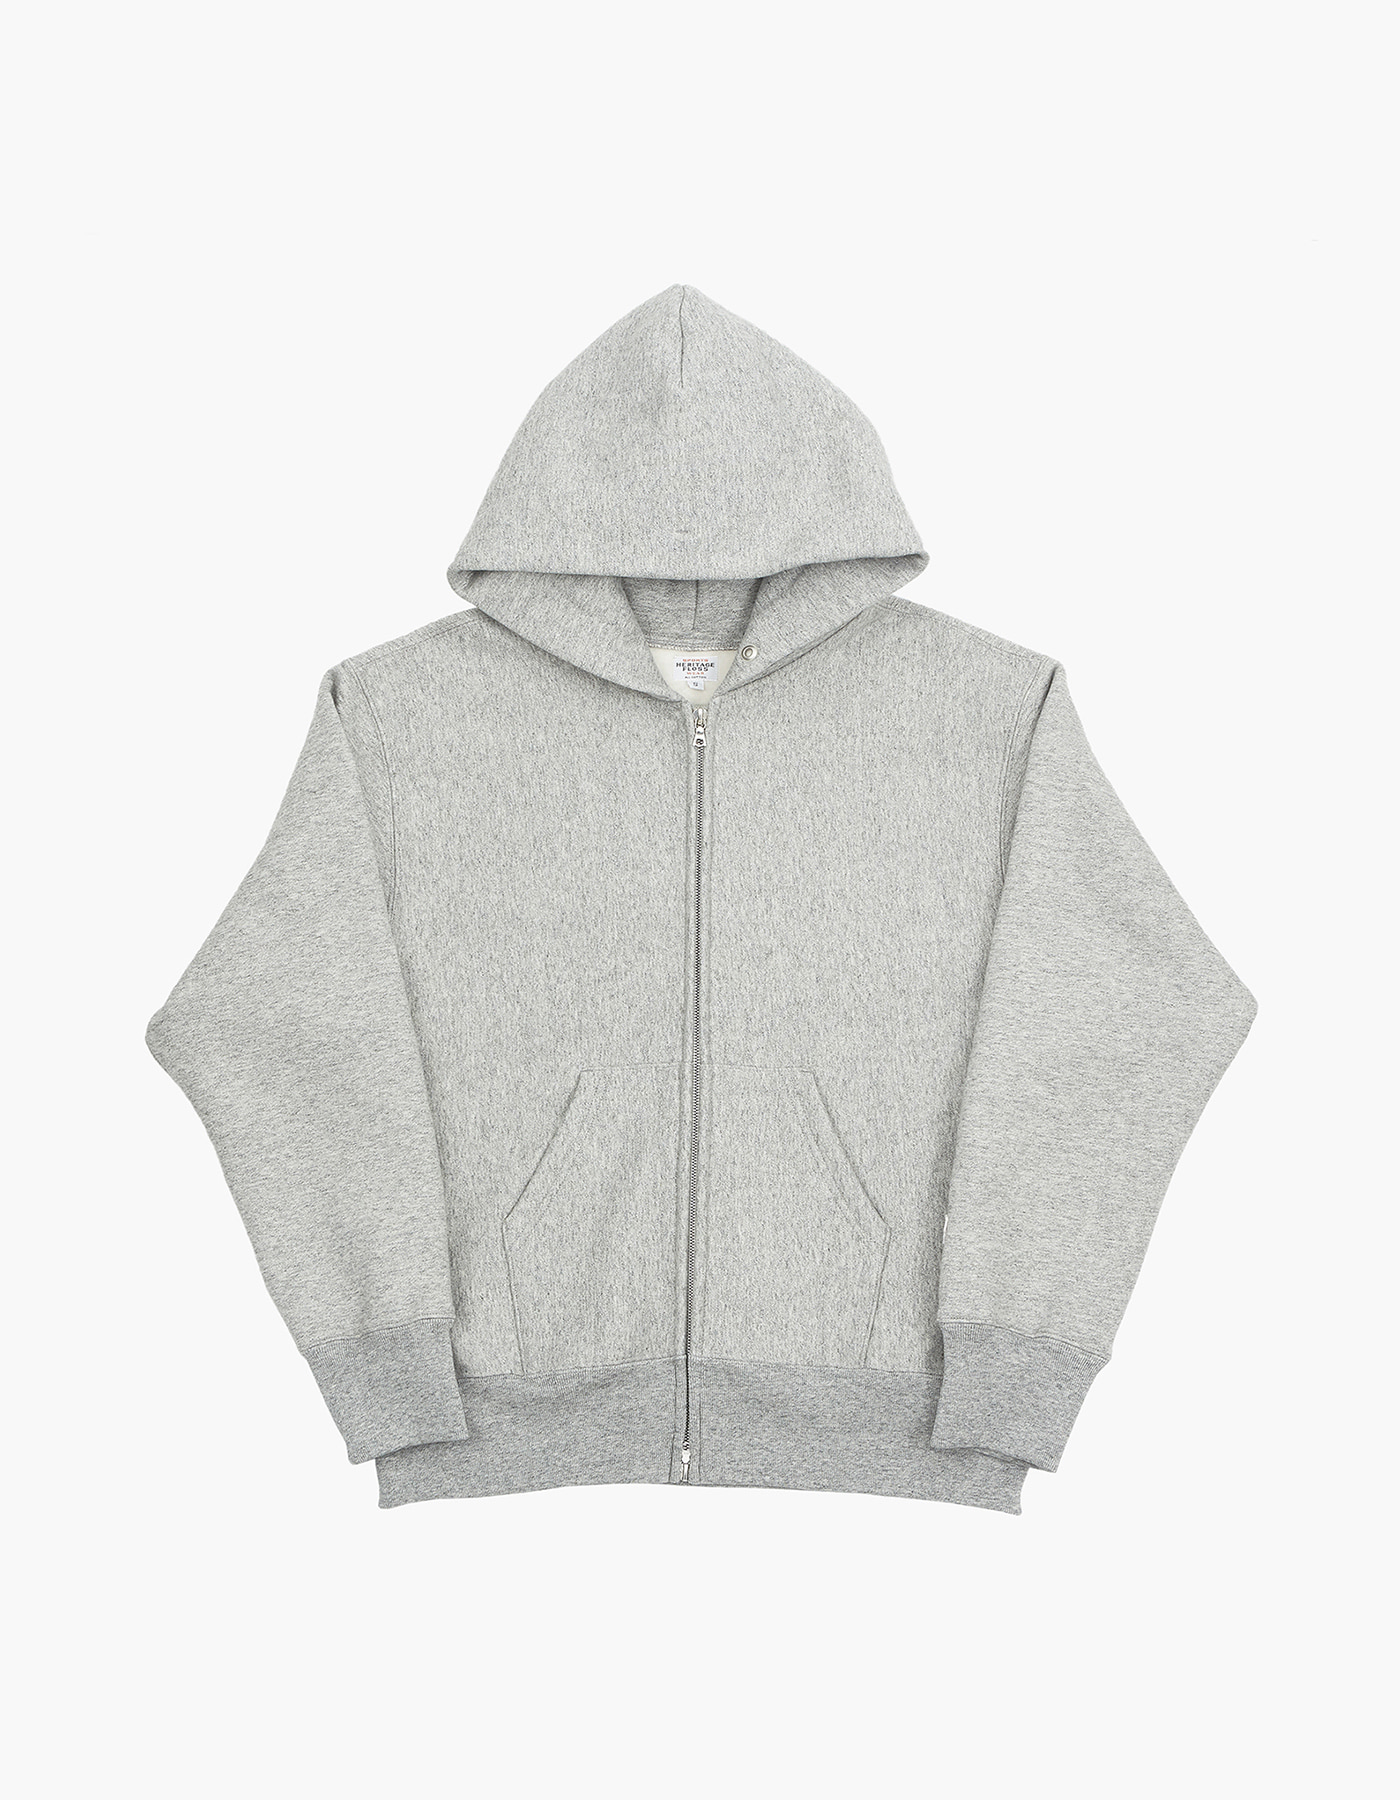 HELINOX X HERITAGEFLOSS 221 REVERSE ZIP-UP / M.GREY